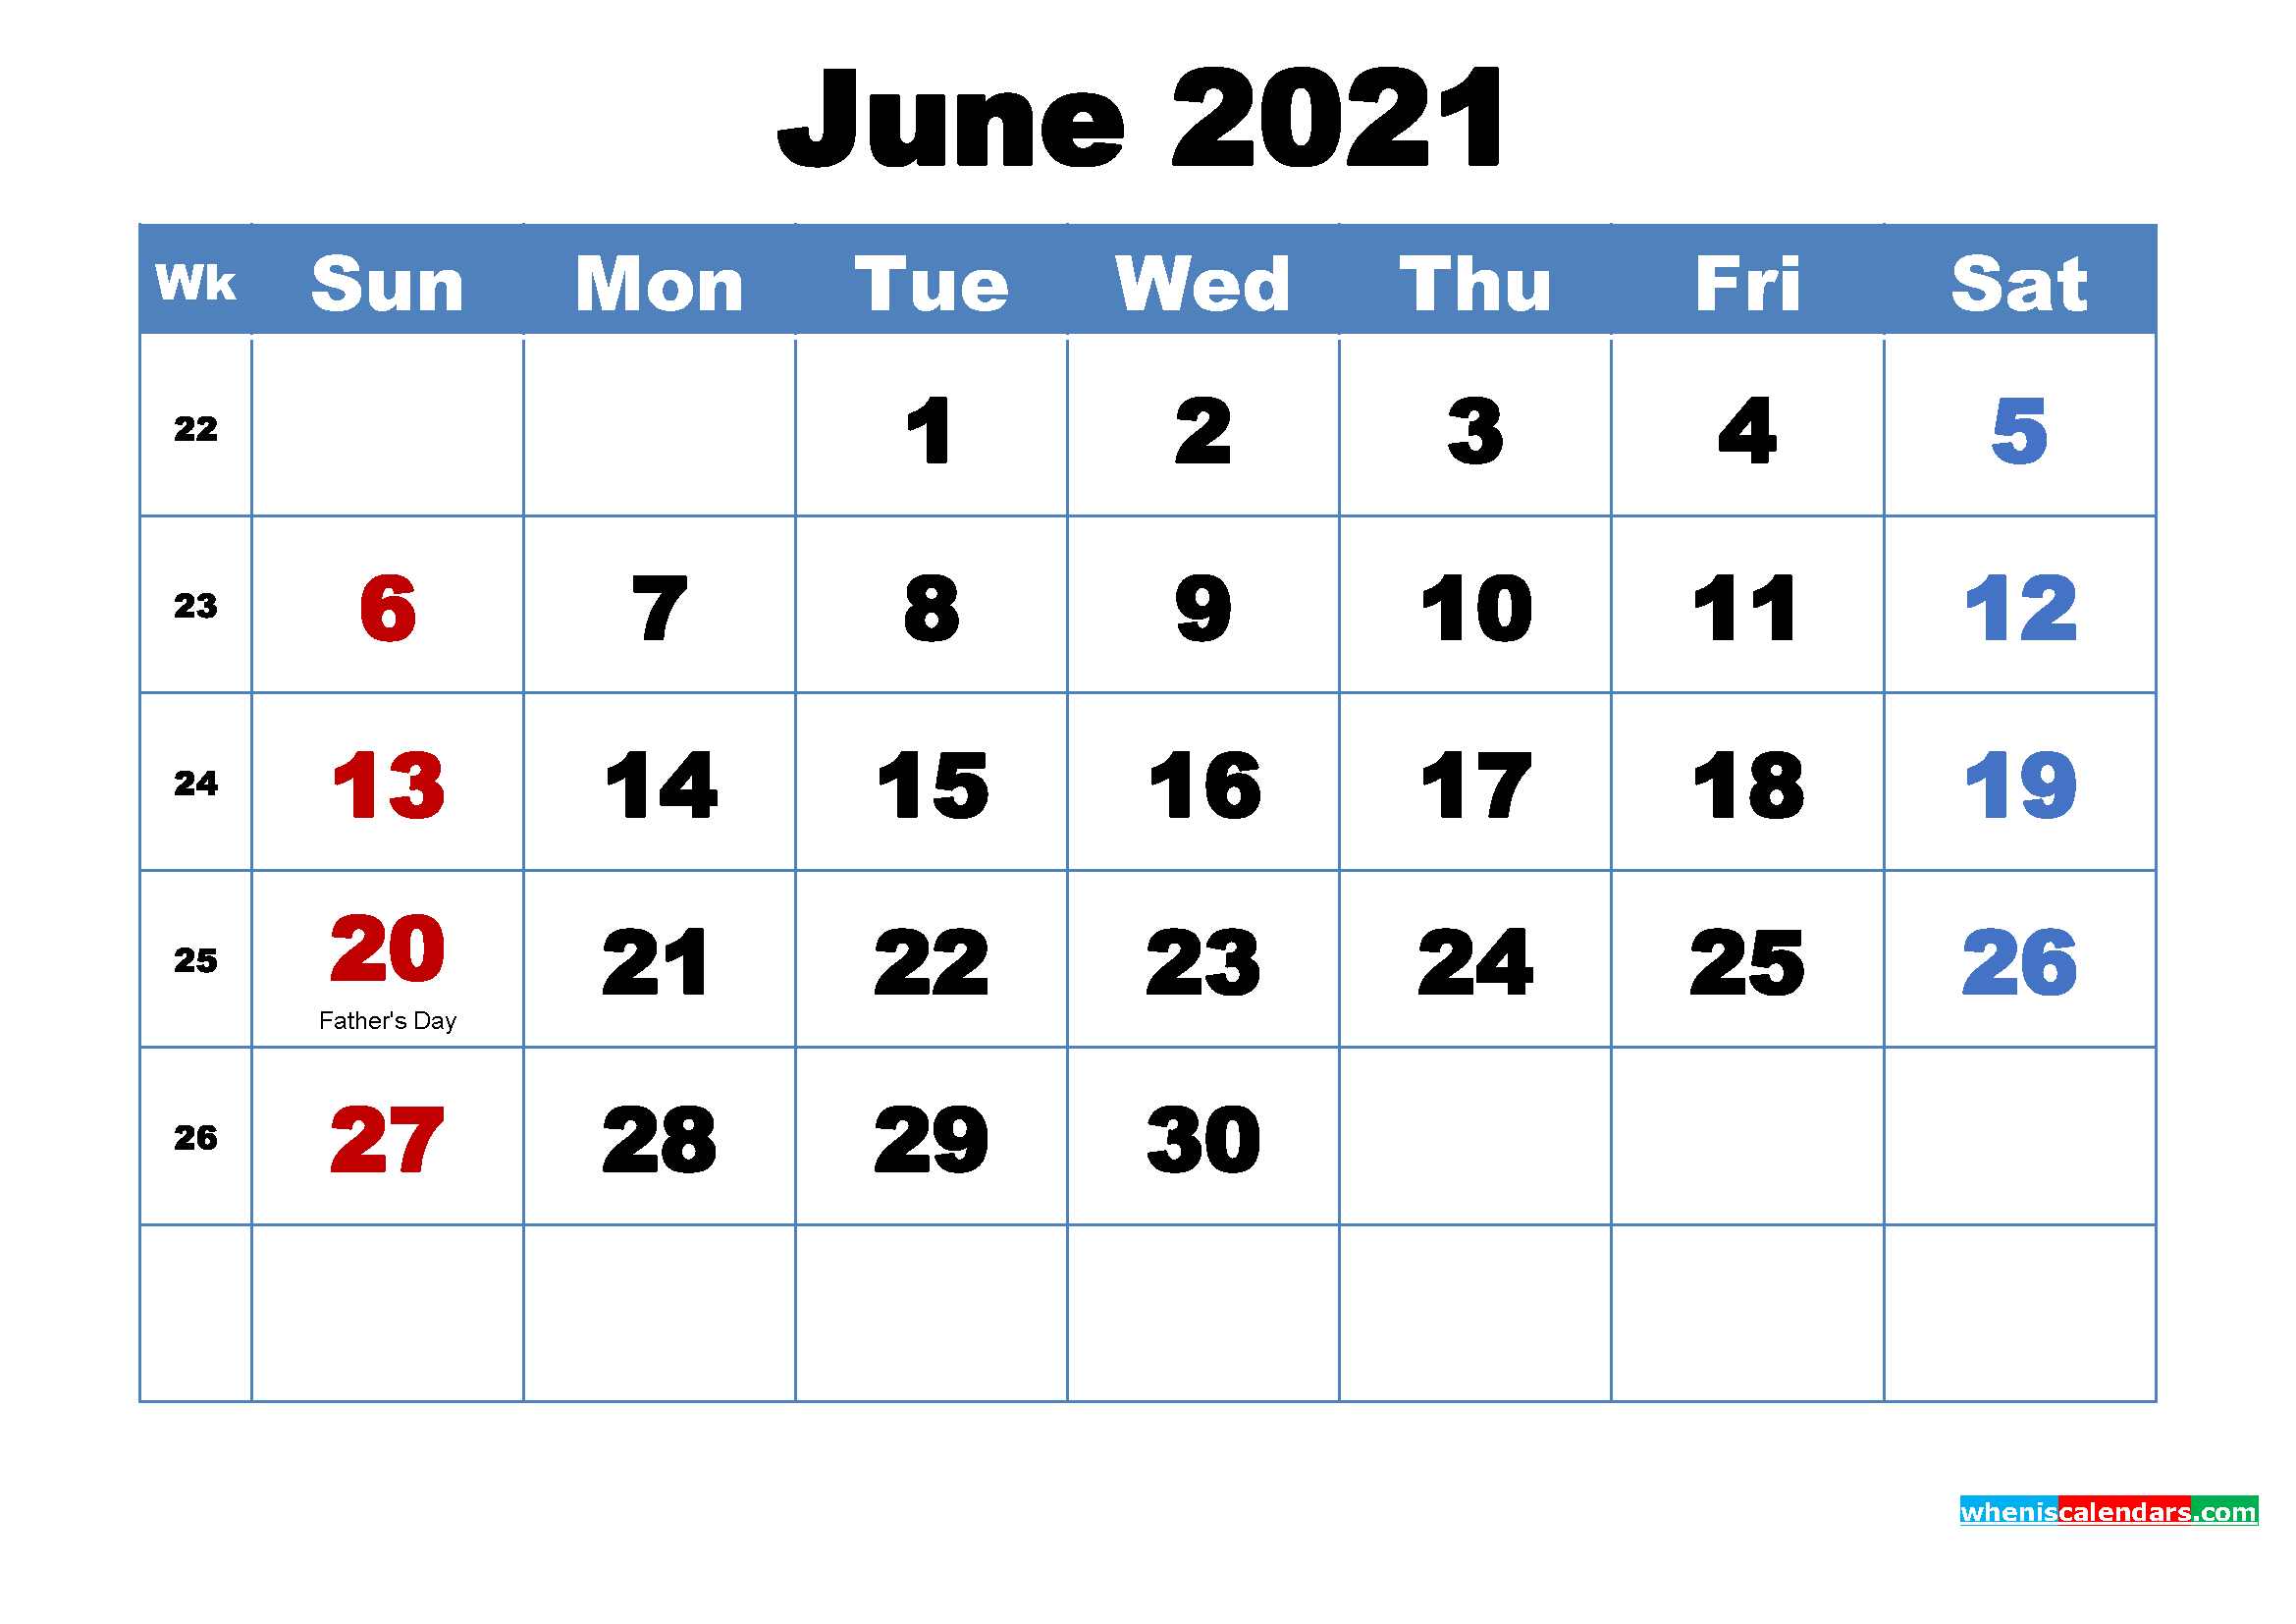 June 2021 Calendar Wallpaper Free Download